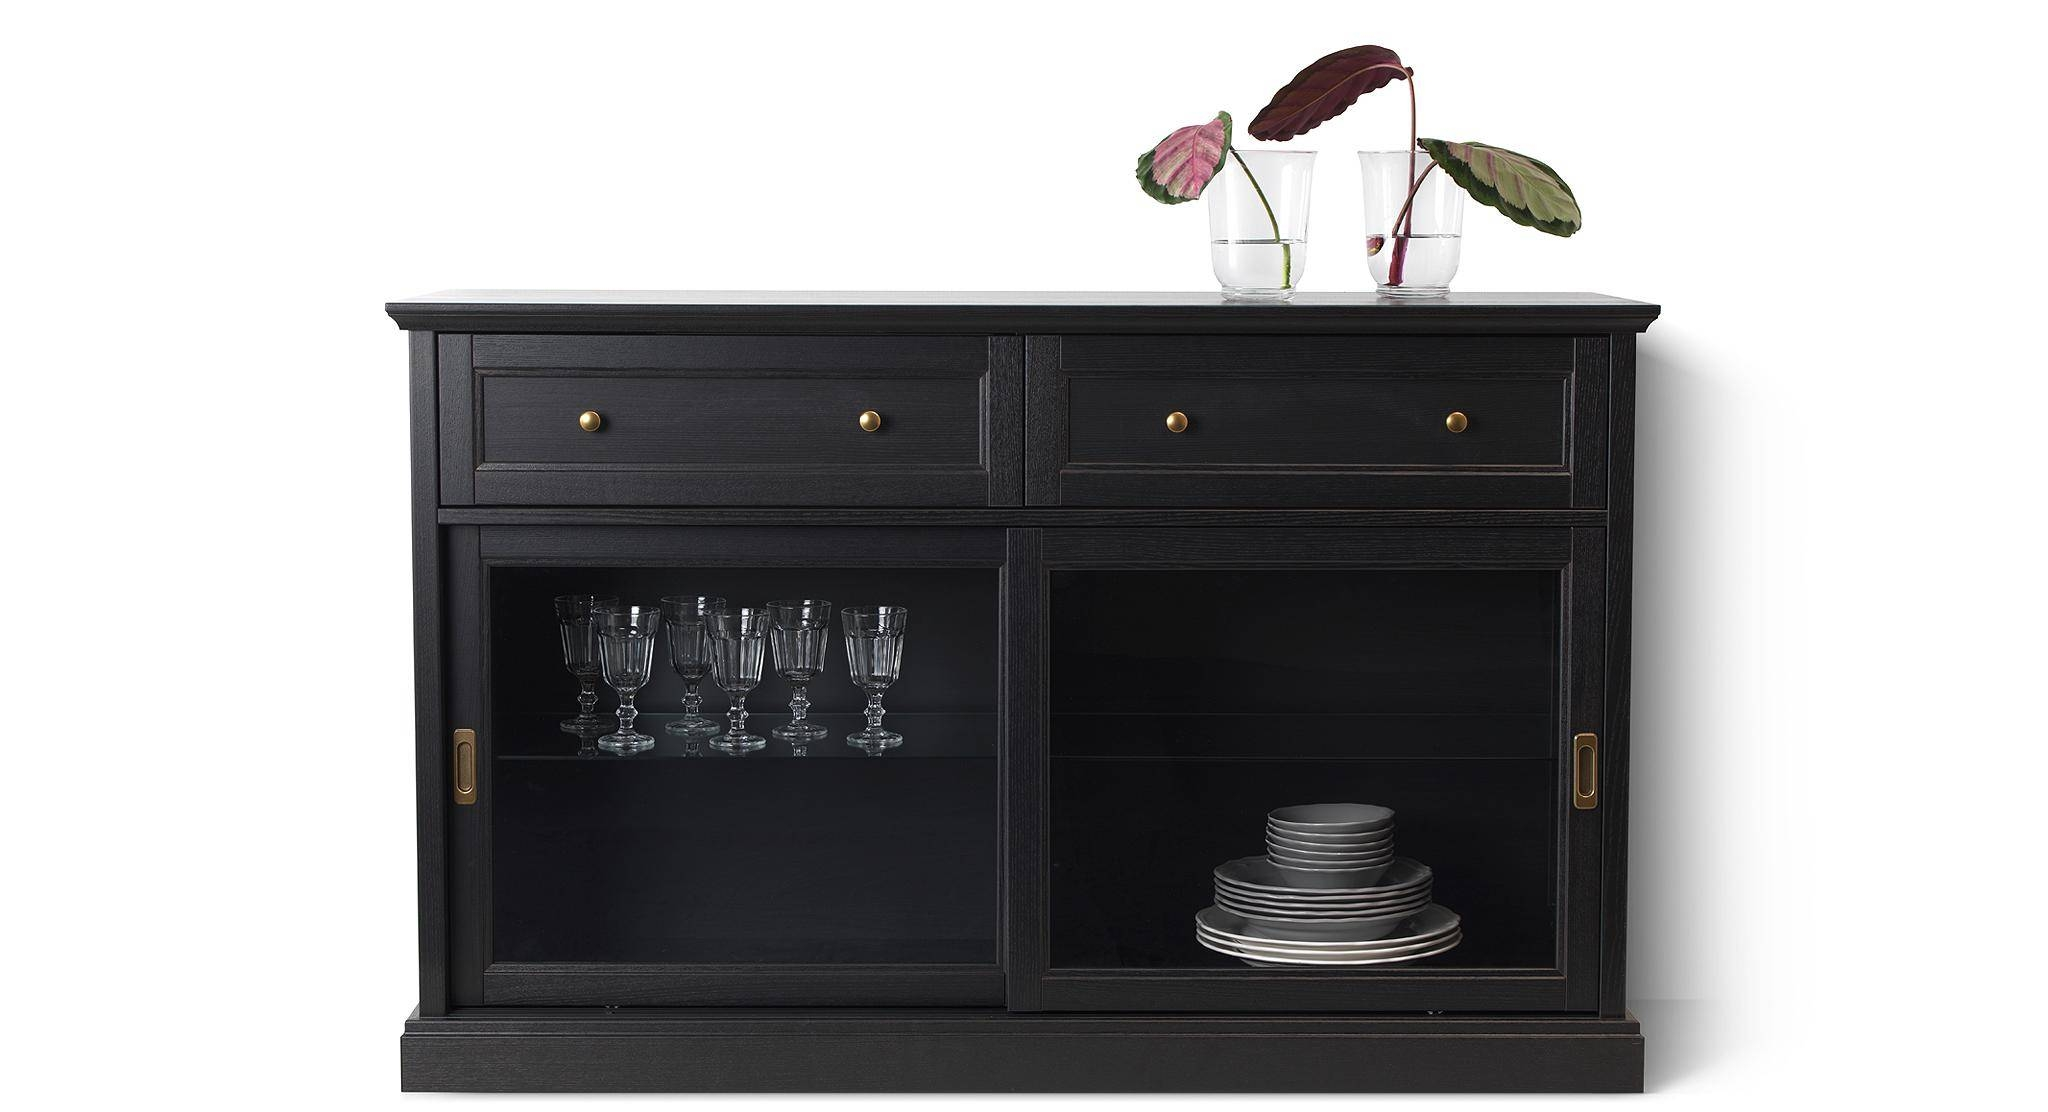 Sideboards & Buffet Cabinets | Ikea In Best And Newest Ikea Sideboards (View 15 of 15)